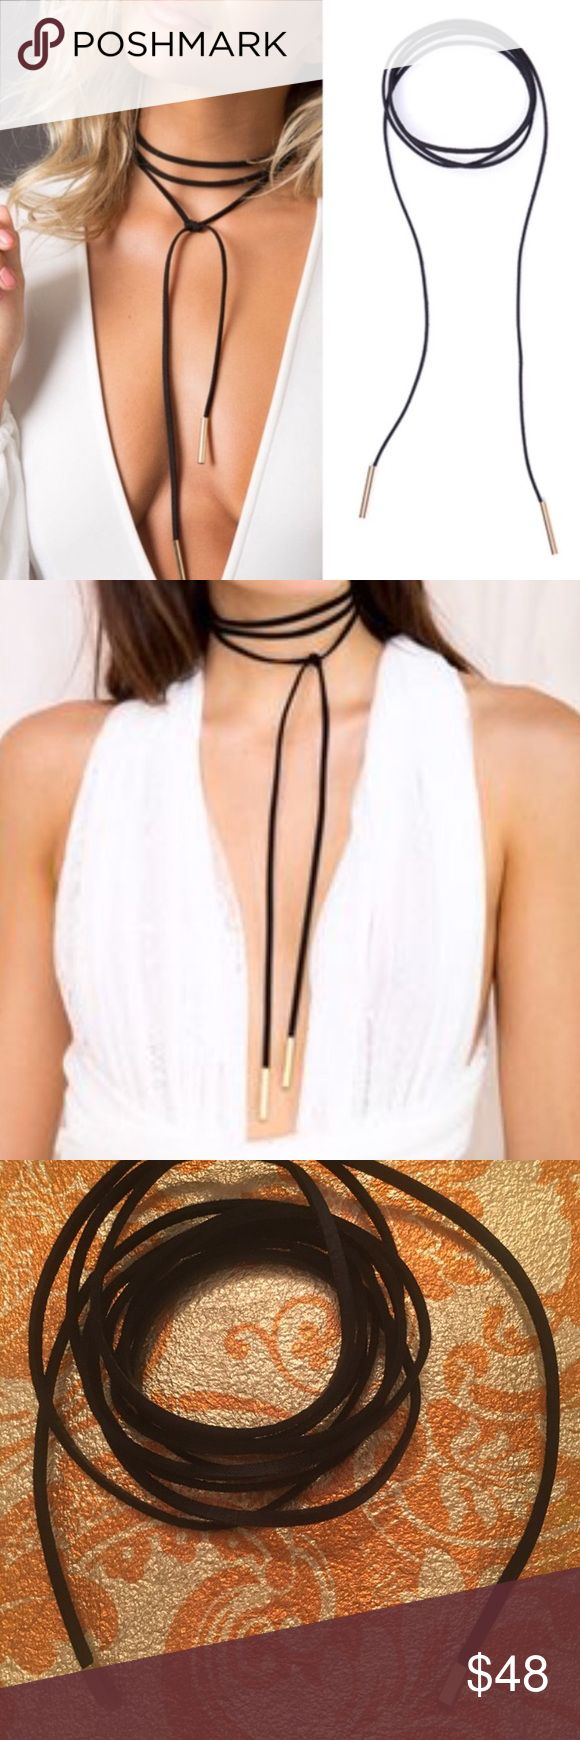 For Love and Lemons choker For Love and Lemons festival black leather choker with gold tips. Wear the necklace in a million ways! OR, headband, belt, anklet, bracelet!!! So versatile! 70 inches long. Brand new, never used. For Love And Lemons Jewelry Necklaces